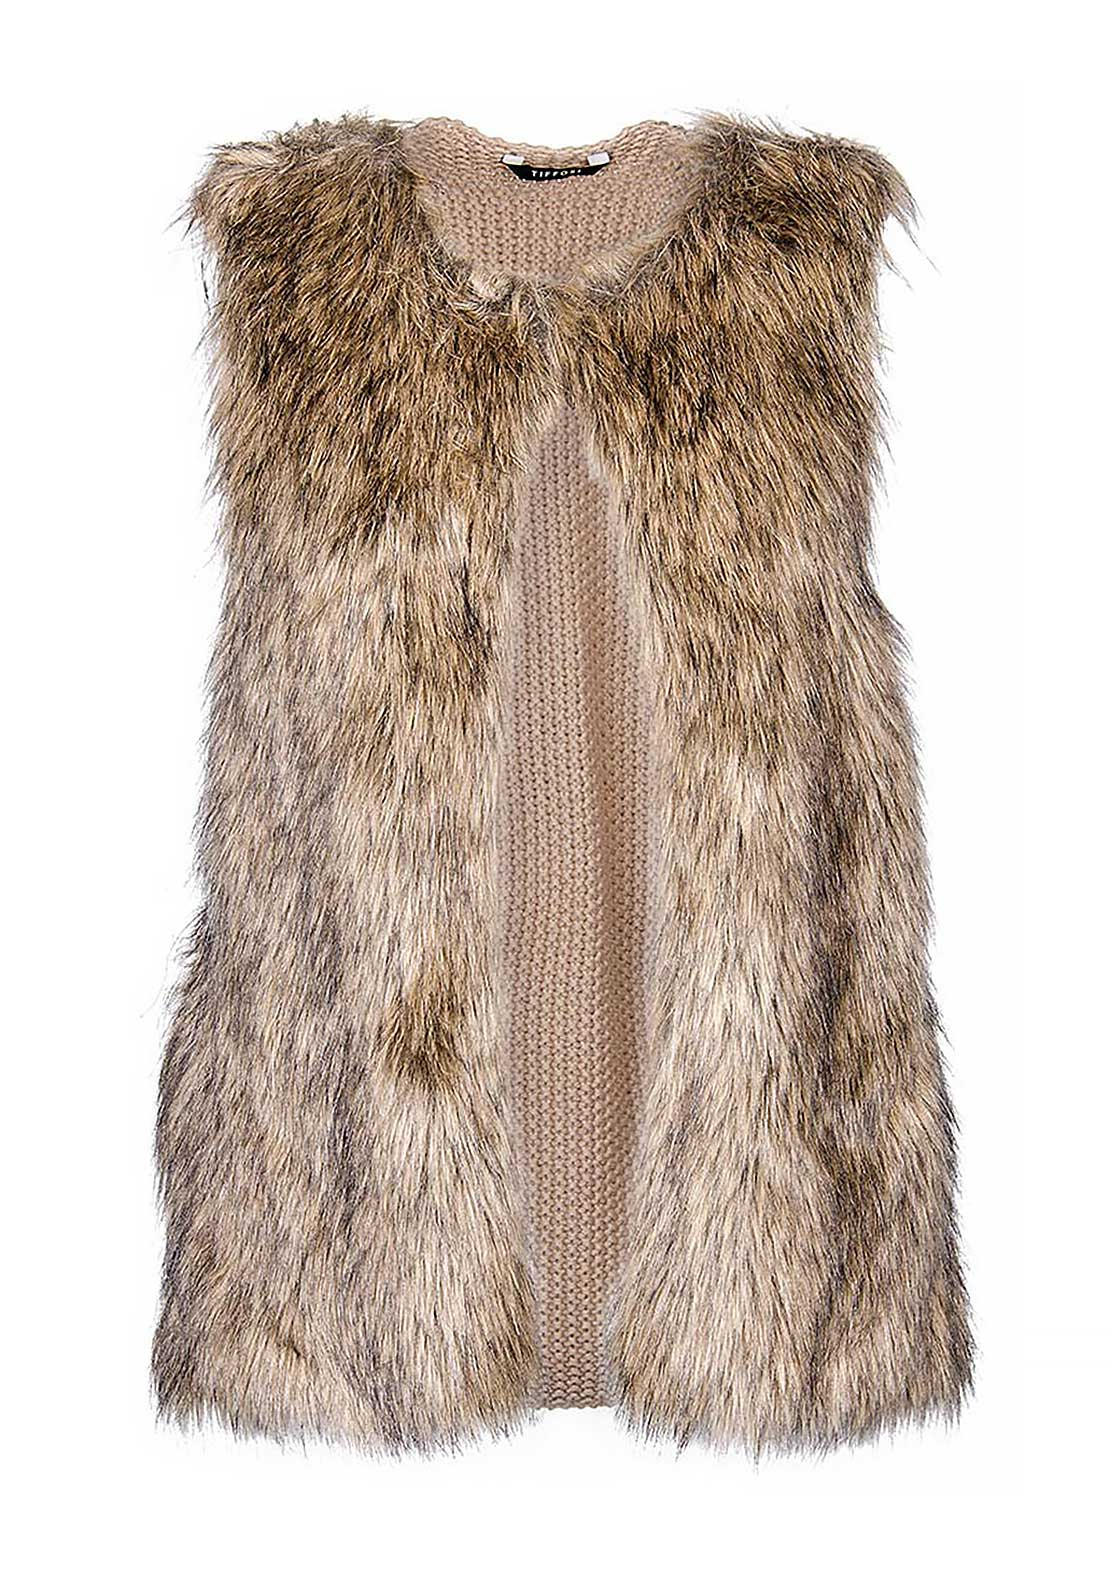 Tiffosi Yvonne Faux Fur Knitted Back Gilet, Brown